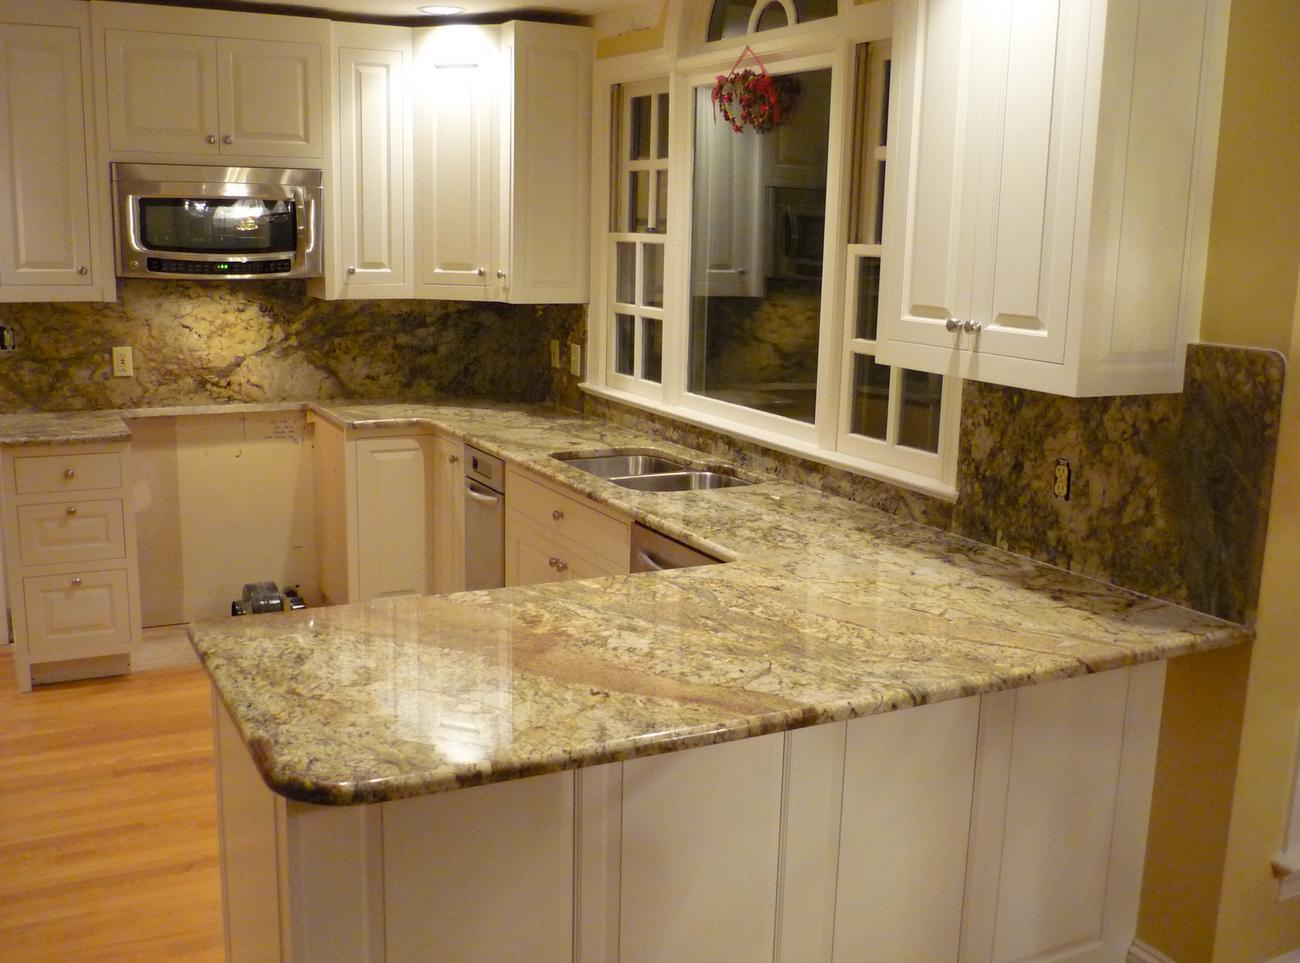 Laminate Granite Countertops Images16